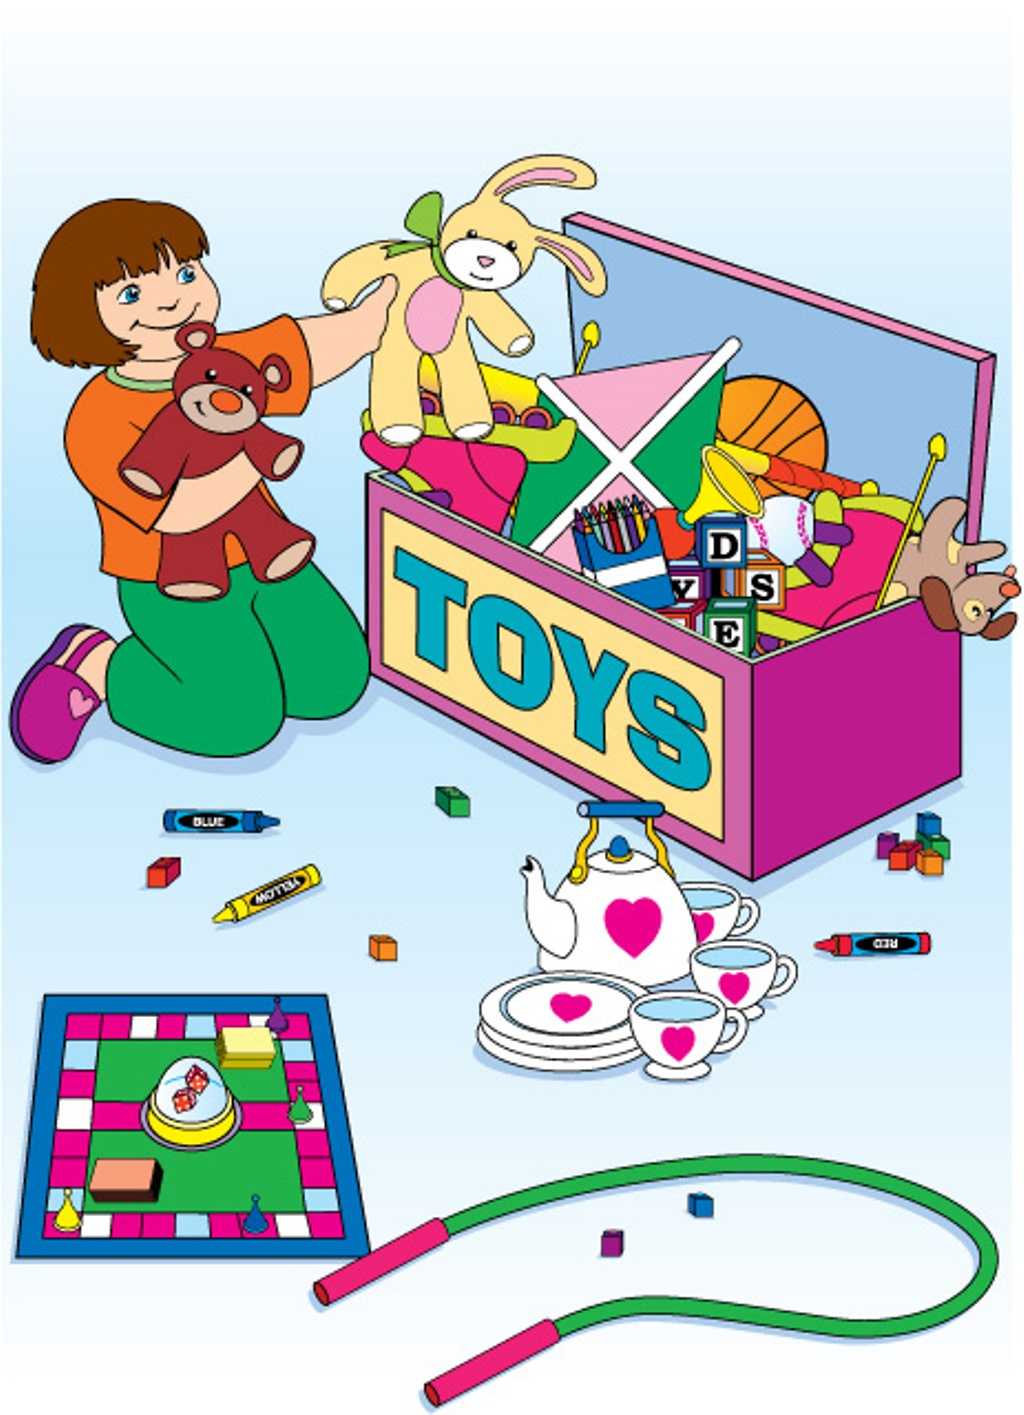 bedroom clean up clipart clipart suggest pick up toys clipart pick up toys clip art black and white